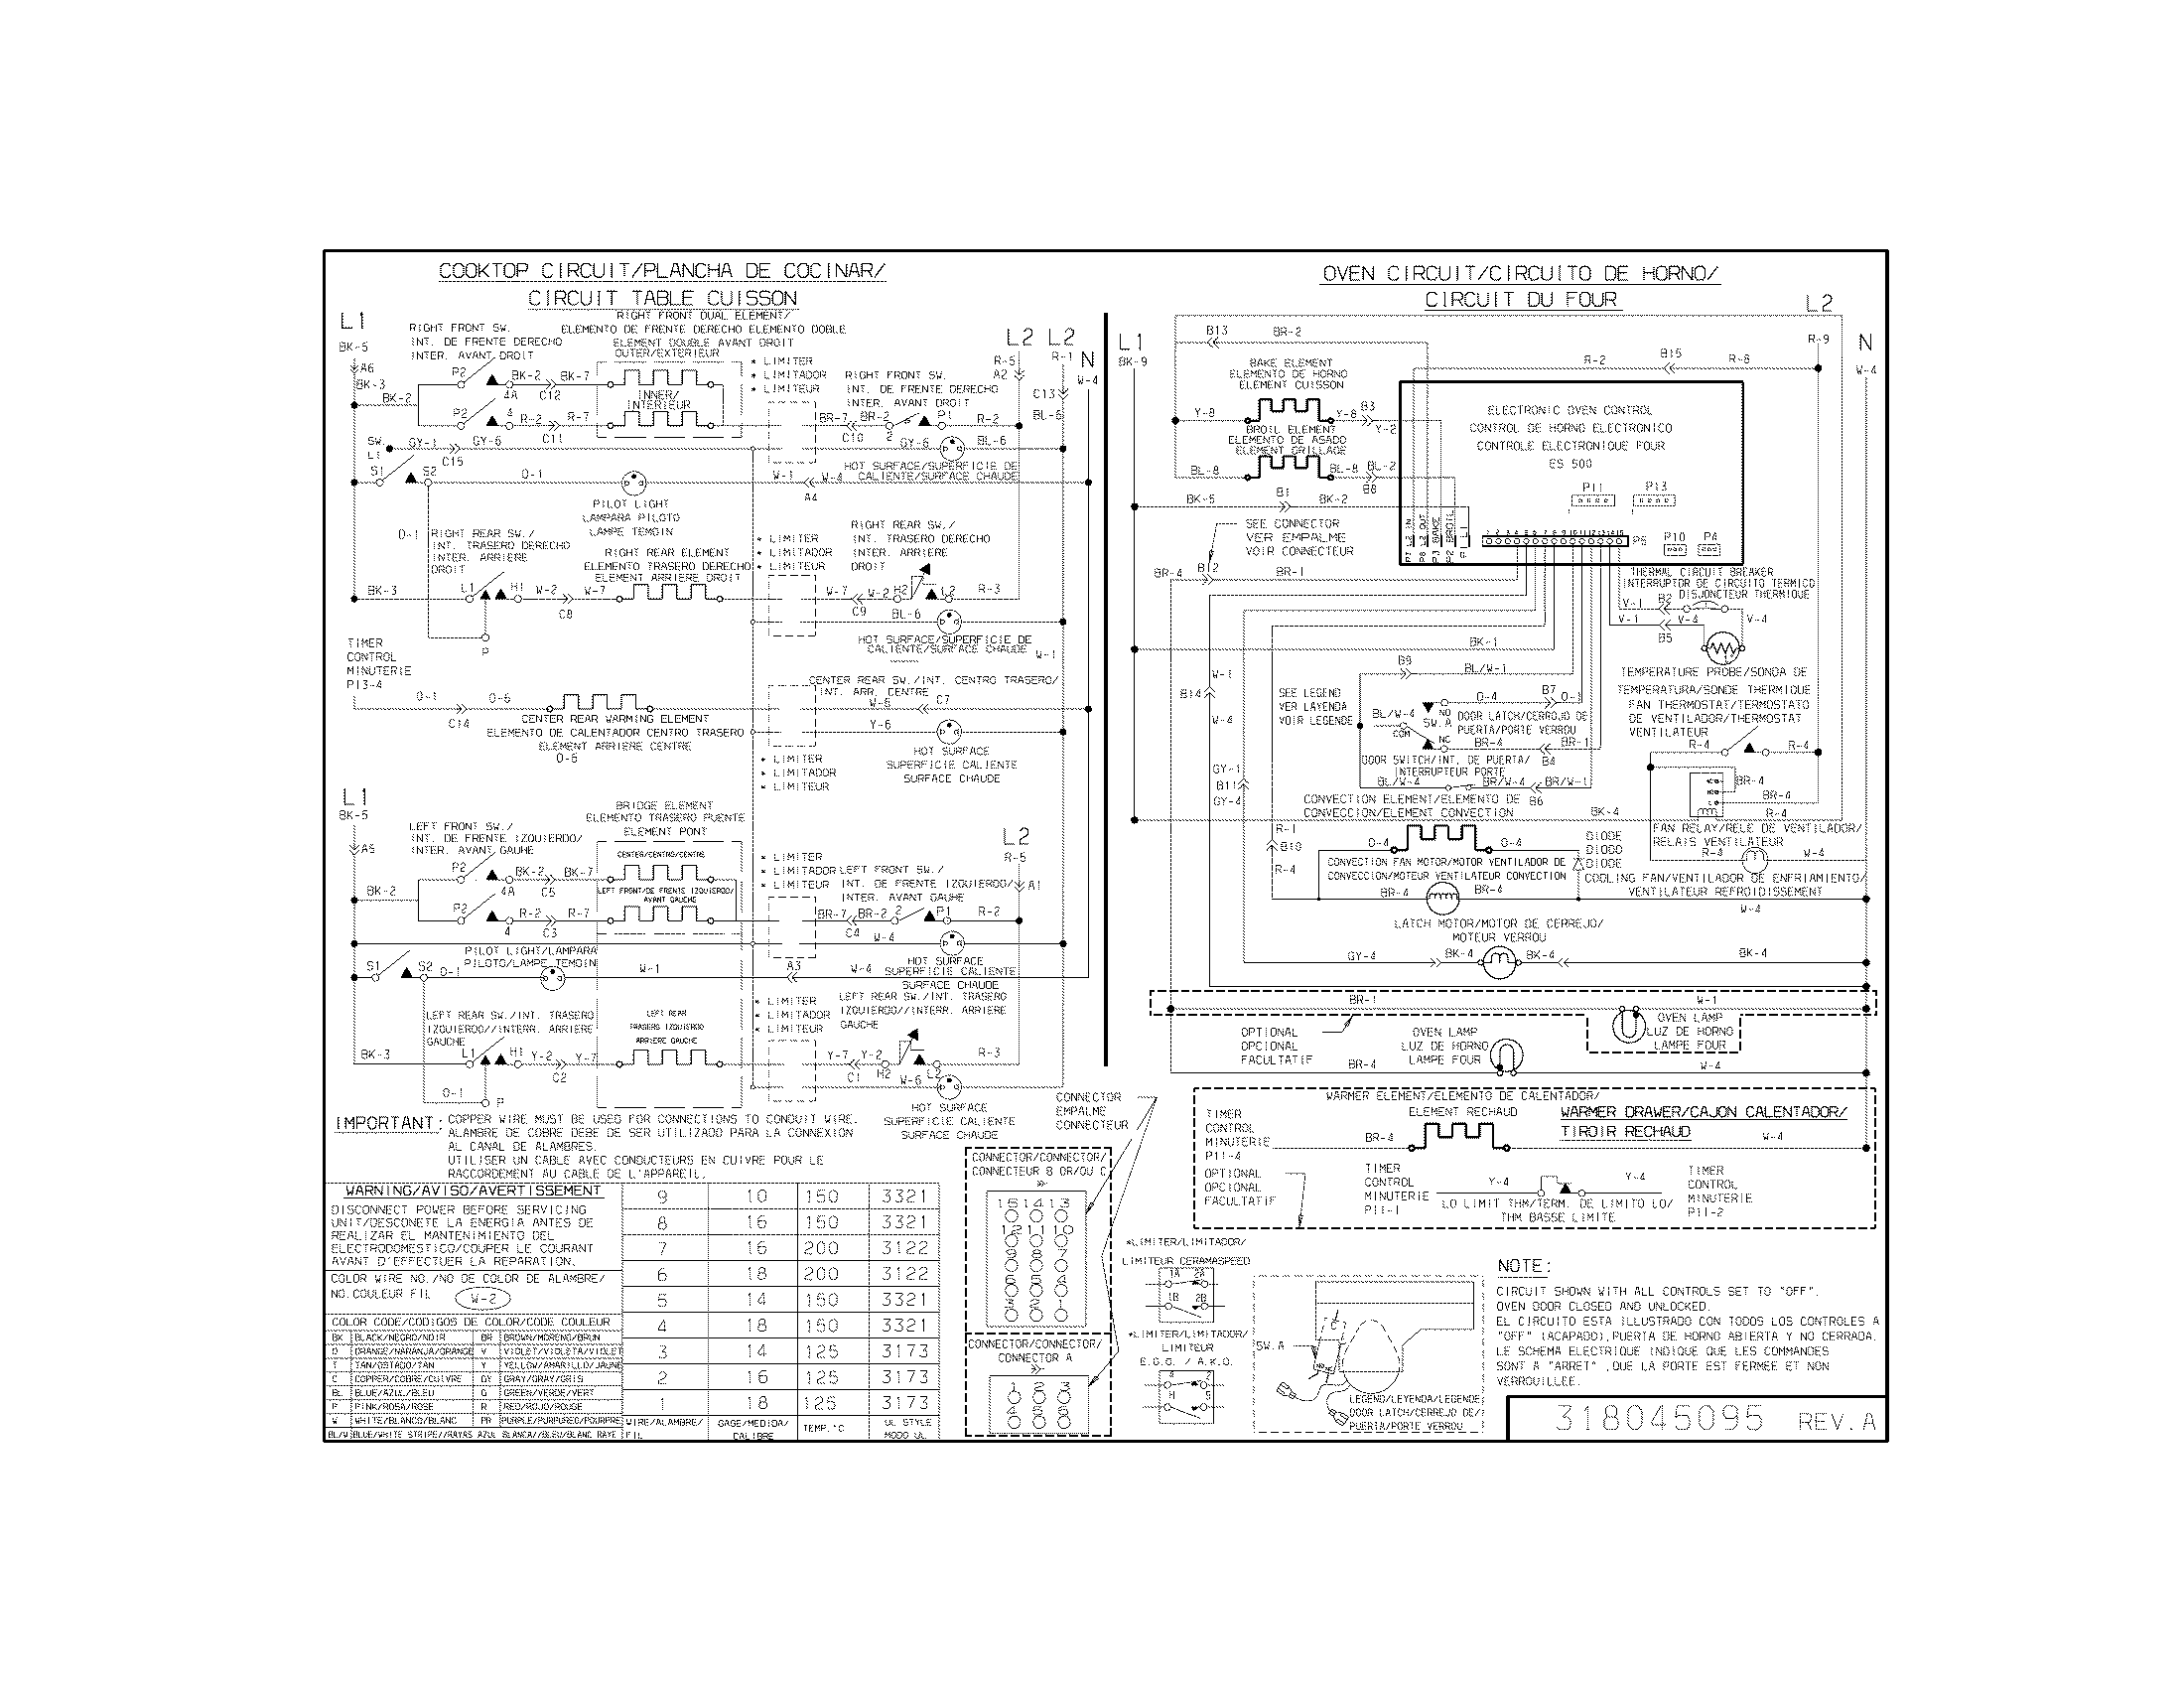 whirlpool electric dryer wiring diagram with Electrolux Range Wiring Diagram on 4234703030 further Bosch Dishwasher Parts Schematic Bosch Refrigerator Parts List Bosch Dishwasher Wiring Diagram In P0308153 00008  Bosch Exxcel Dishwasher Parts Diagram furthermore Amana Refrigerator Problems Not Cooling also Index together with Whirlpool Gas Range Wiring Diagram.